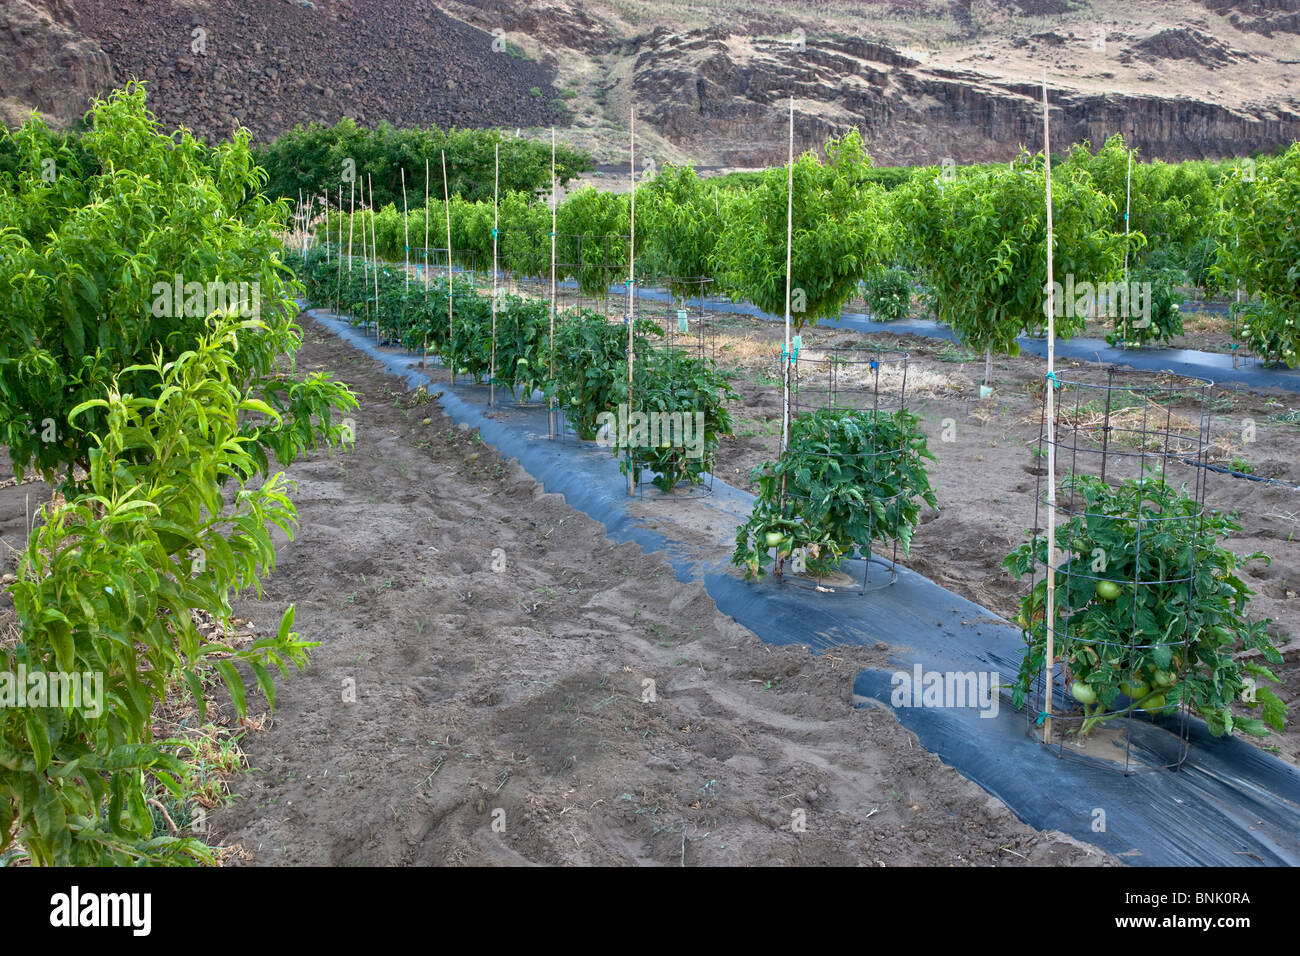 Intercropping, young Nectarine orchard,  tomato plants, - Stock Image